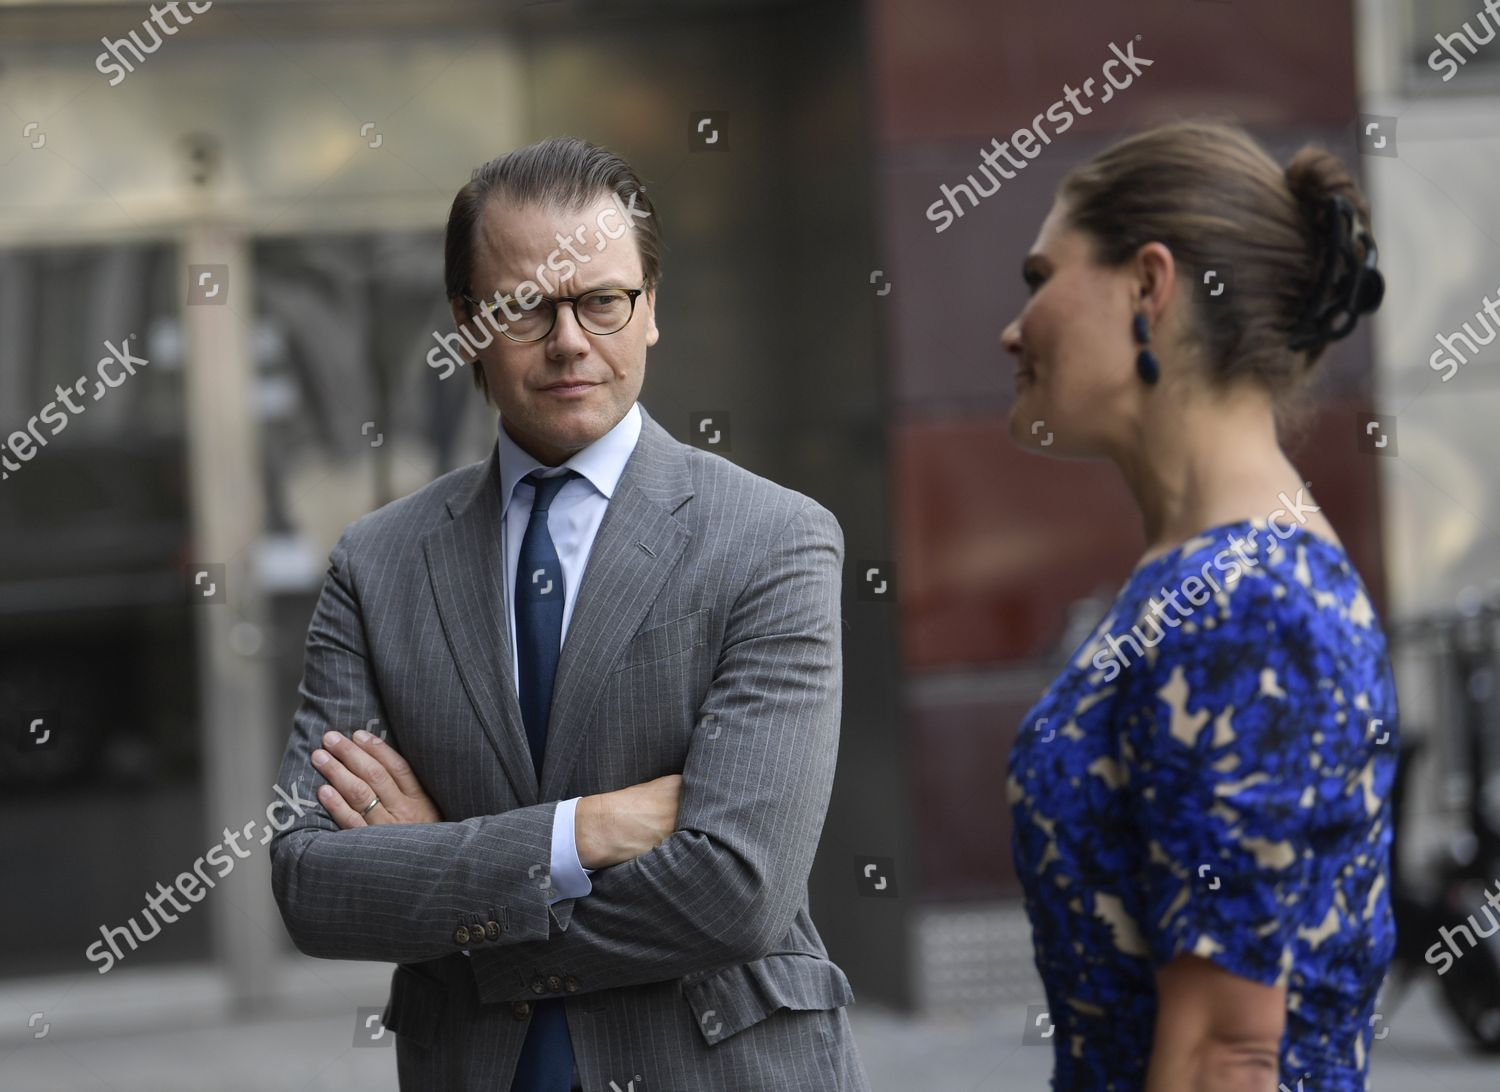 prince-daniel-and-crown-princess-victoria-at-visita-stockholm-sweden-shutterstock-editorial-10750019c.jpg